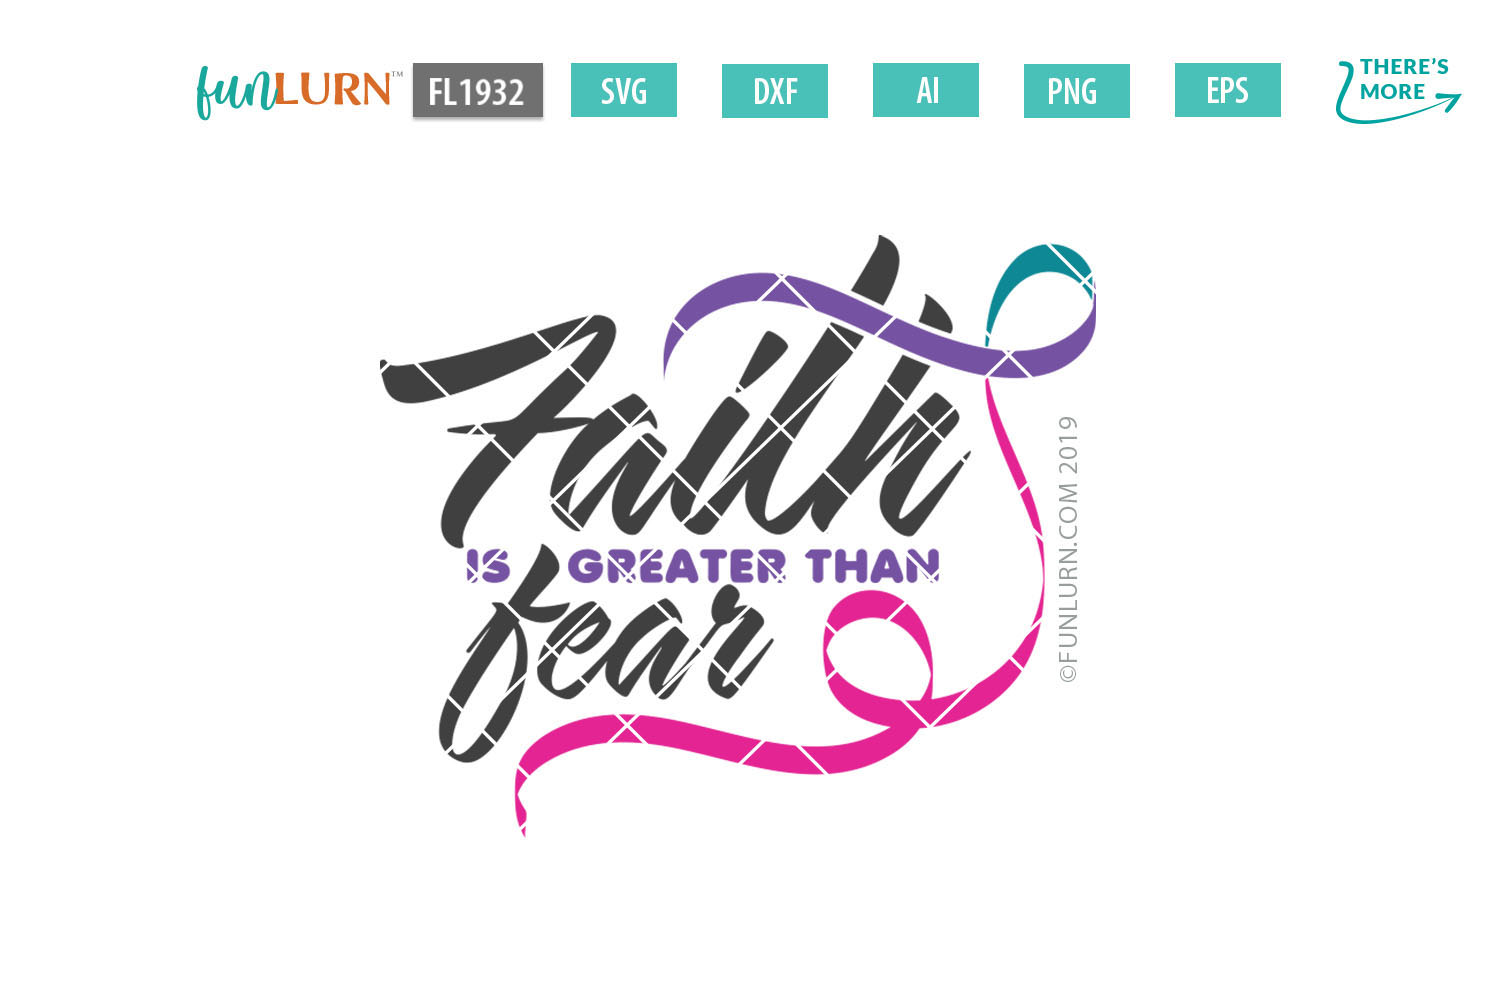 Faith is Greater Than Fear Purple Teal Pink Ribbon SVG example image 2